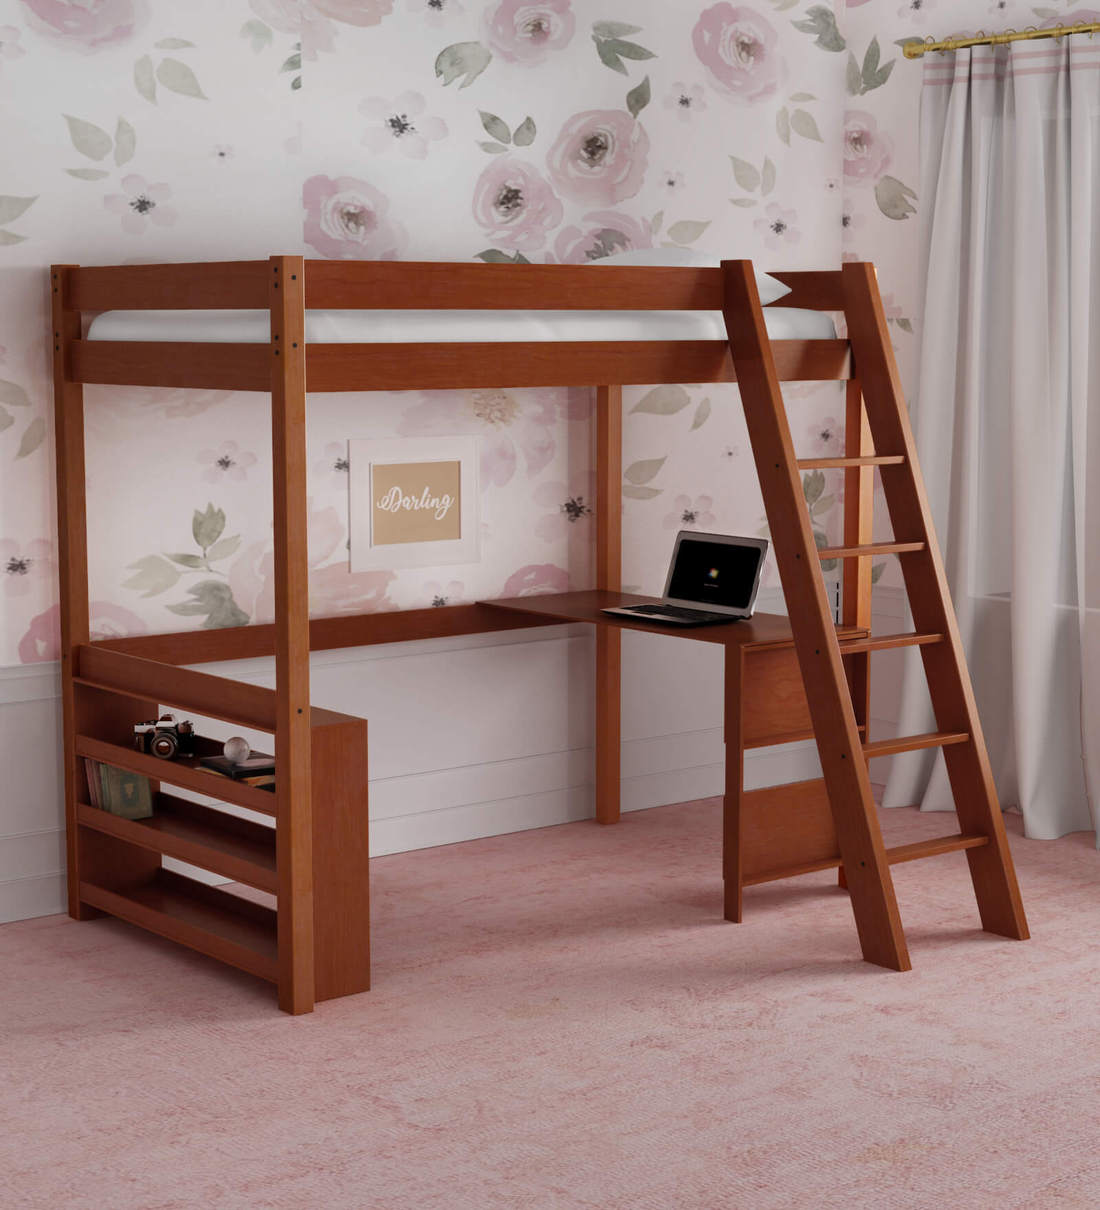 Picture of: Buy Mccaffeine Loft Bed With Study Desk Shelves By Mollycoddle Online Loft Beds Kids Furniture Kids Furniture Pepperfry Product